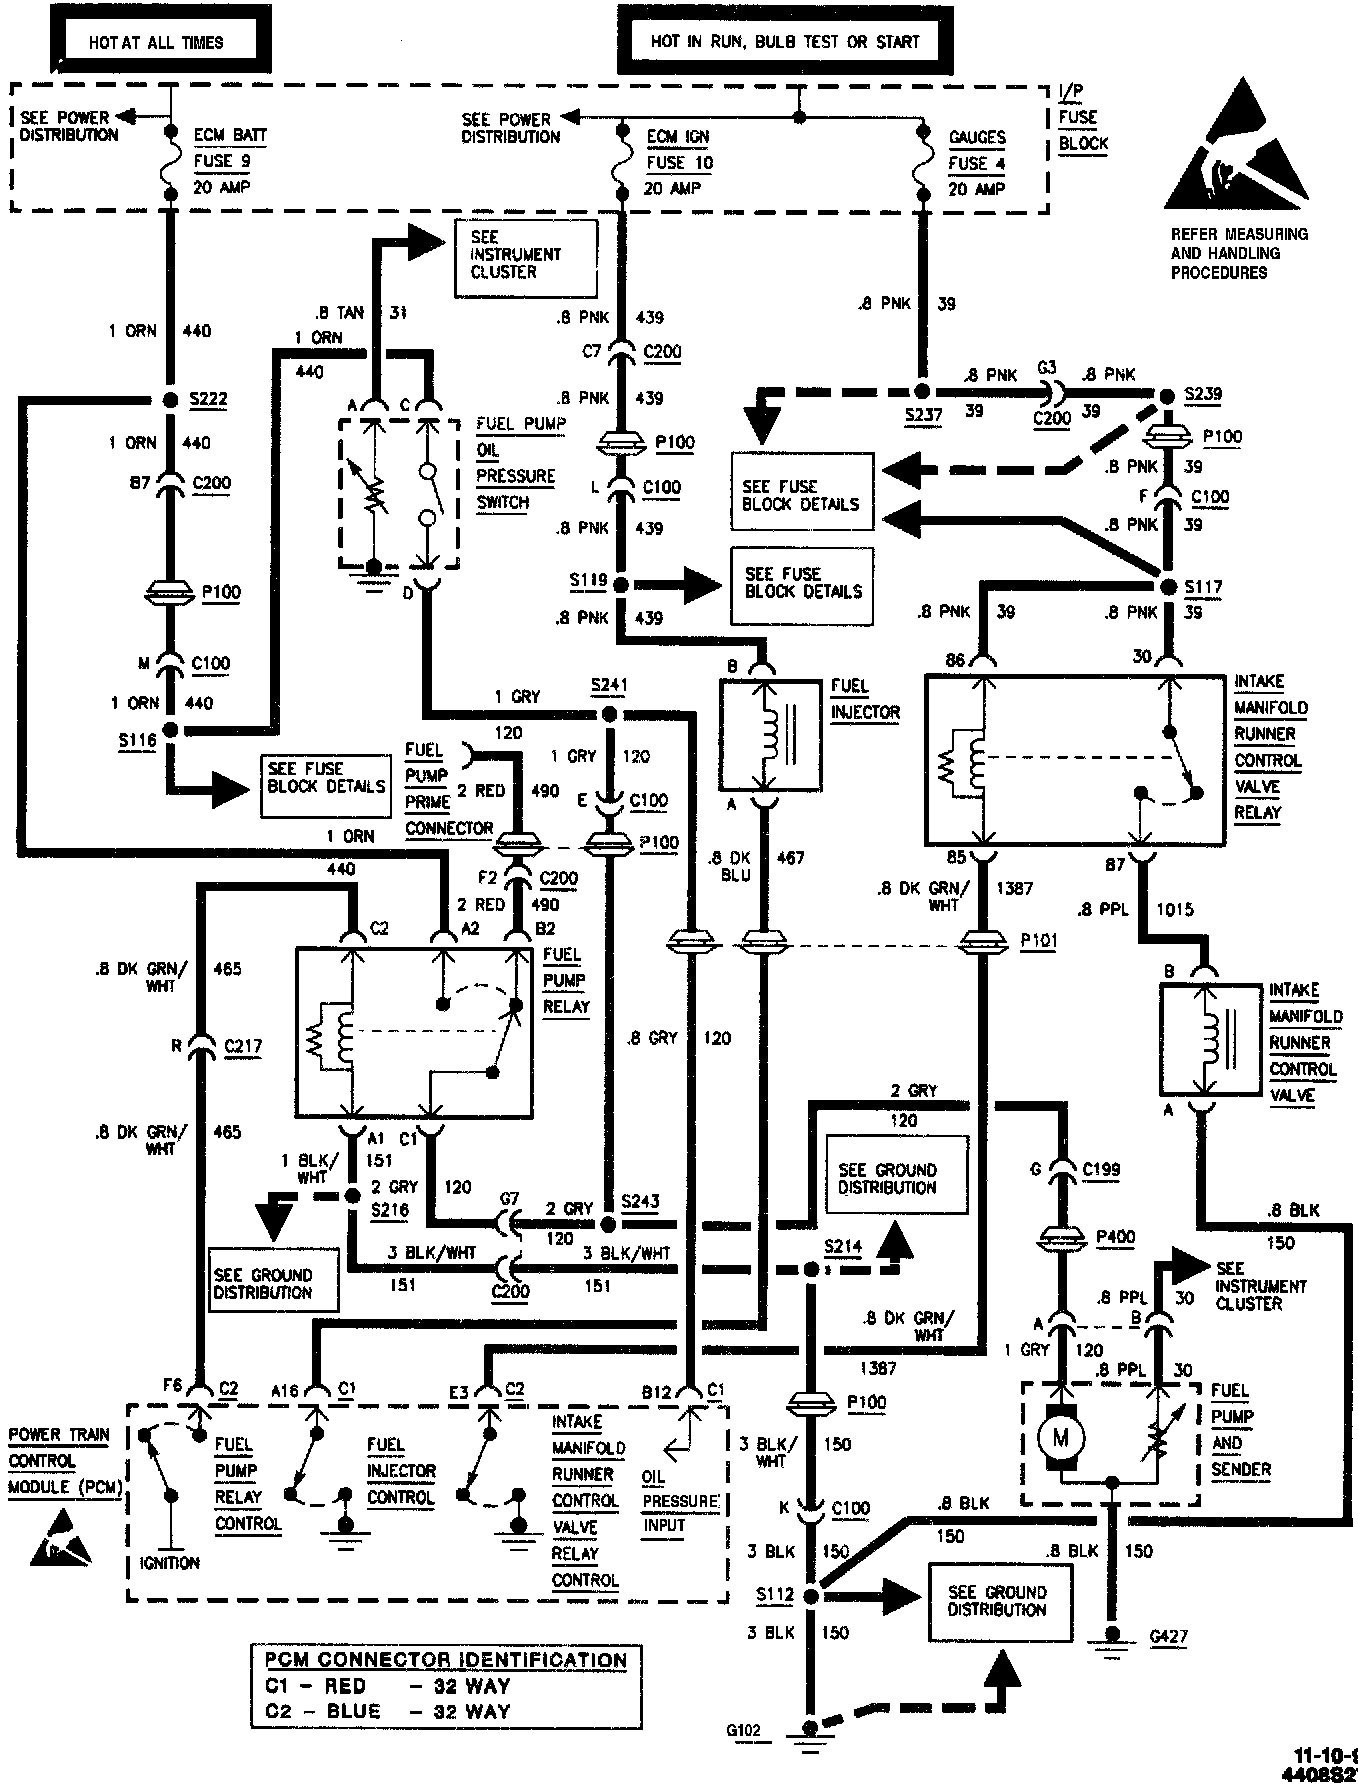 1996 Chevy S10 Wiring Diagram Ignition Switch Wiring Diagram 2001 Blazer Valid 1996 Chevy Blazer Of 1996 Chevy S10 Wiring Diagram 1997 Chevy S10 Wiring Diagram Collection